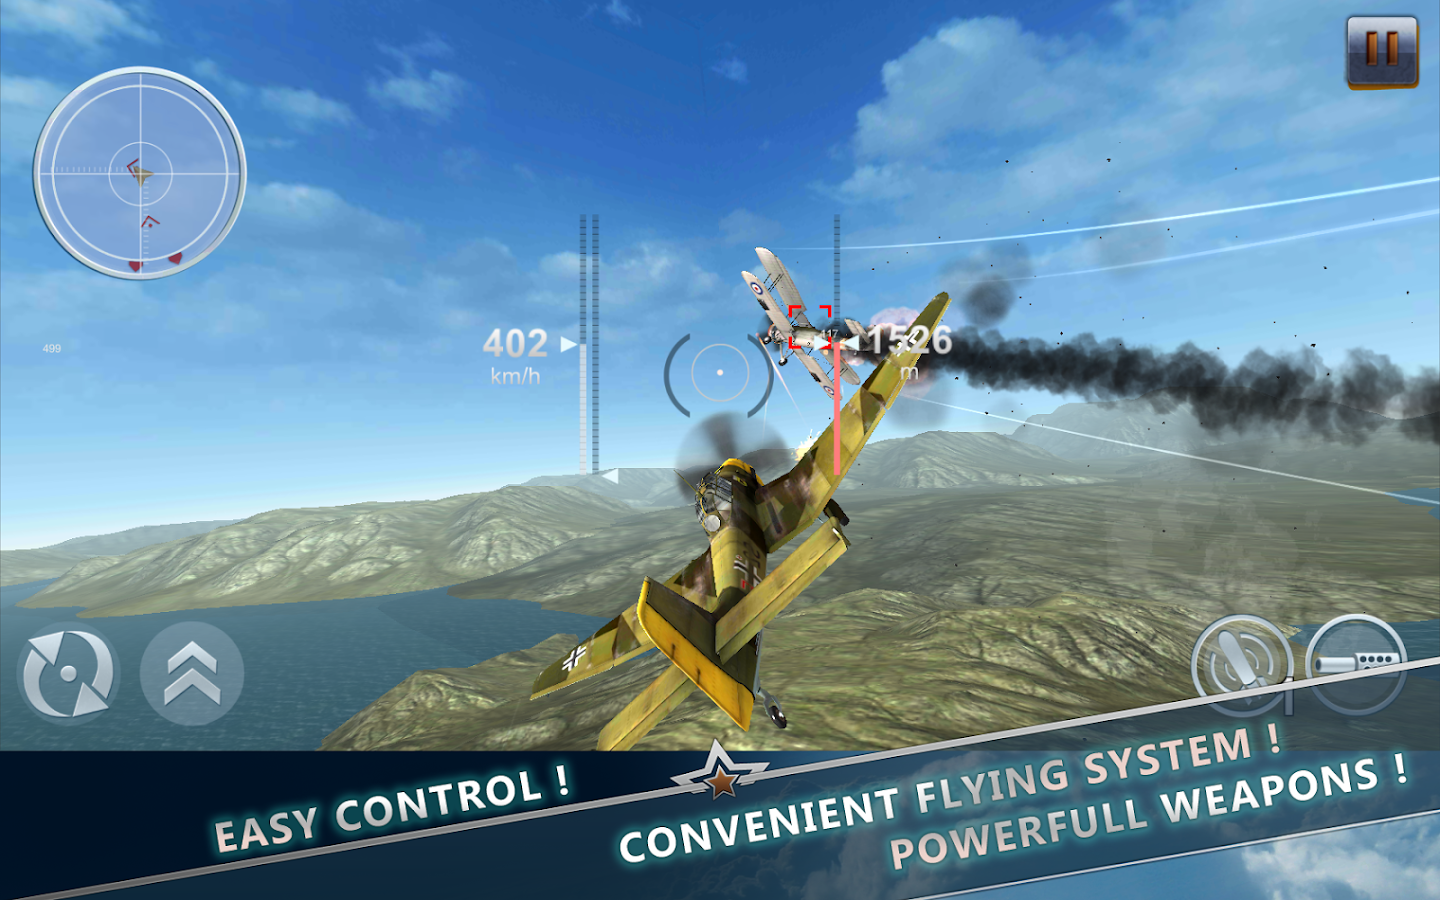 addictive helicopter game with Details on Id1313285805 besides Ravenfield Beta 5 furthermore Iphoneipadbattleship in addition Rubble N Strafe Beta Download moreover Tom Clancys Ghost Recon Wildlands Can Tom Clancy Steal Us Away Shooters.